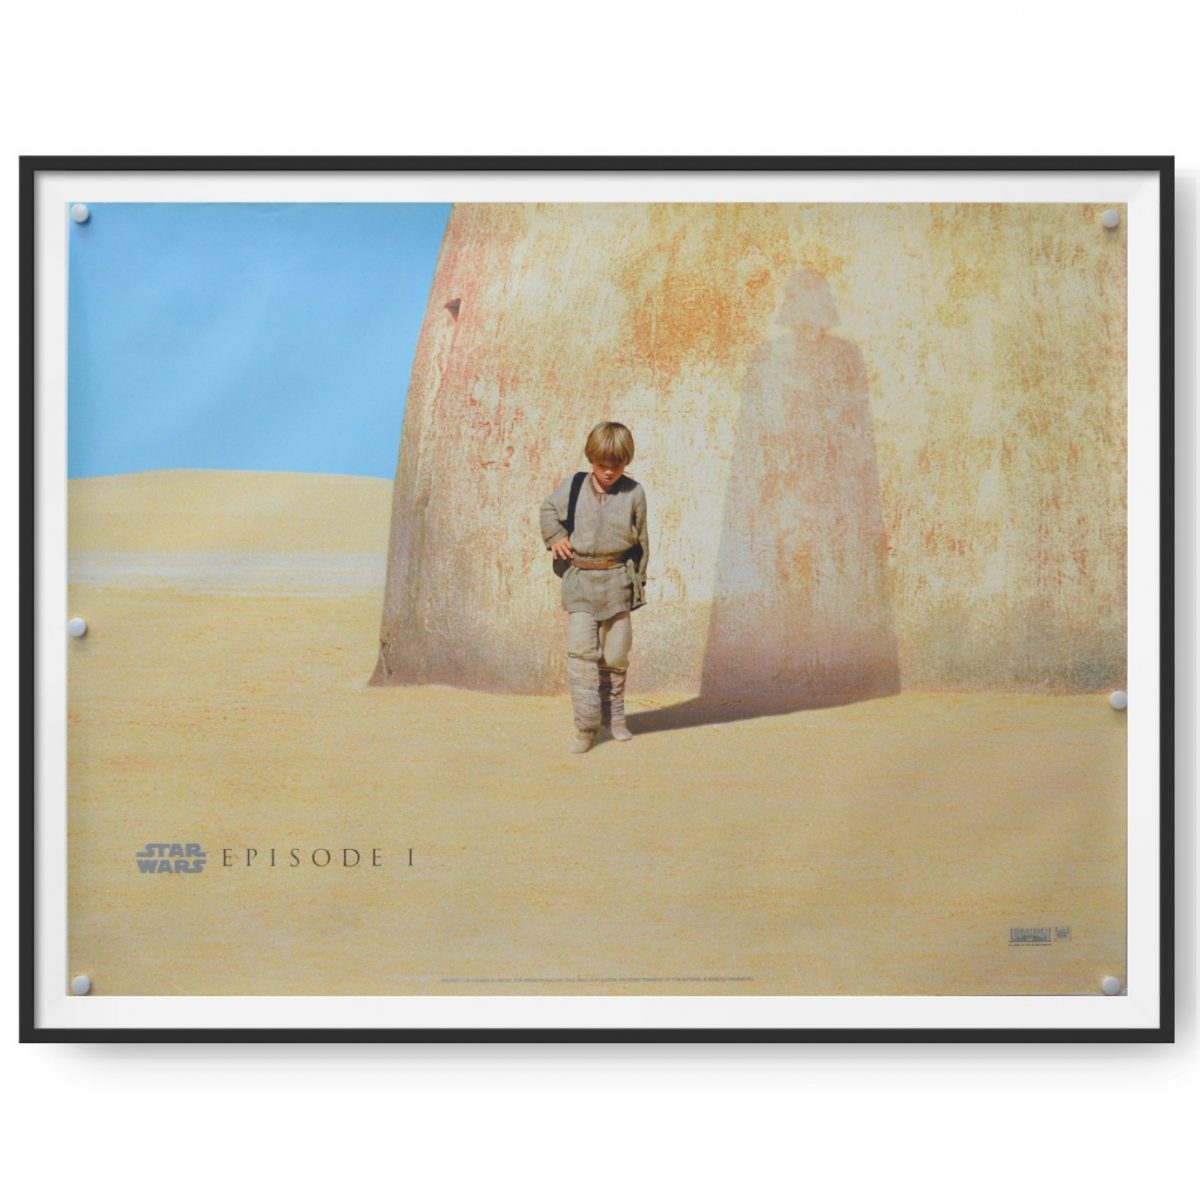 This a framed UK quad poster for the 1999 release of Episode 1 of the Star Wars series. A shadow on the sandstone rock suggest who Anakin Skywalker is set to become.